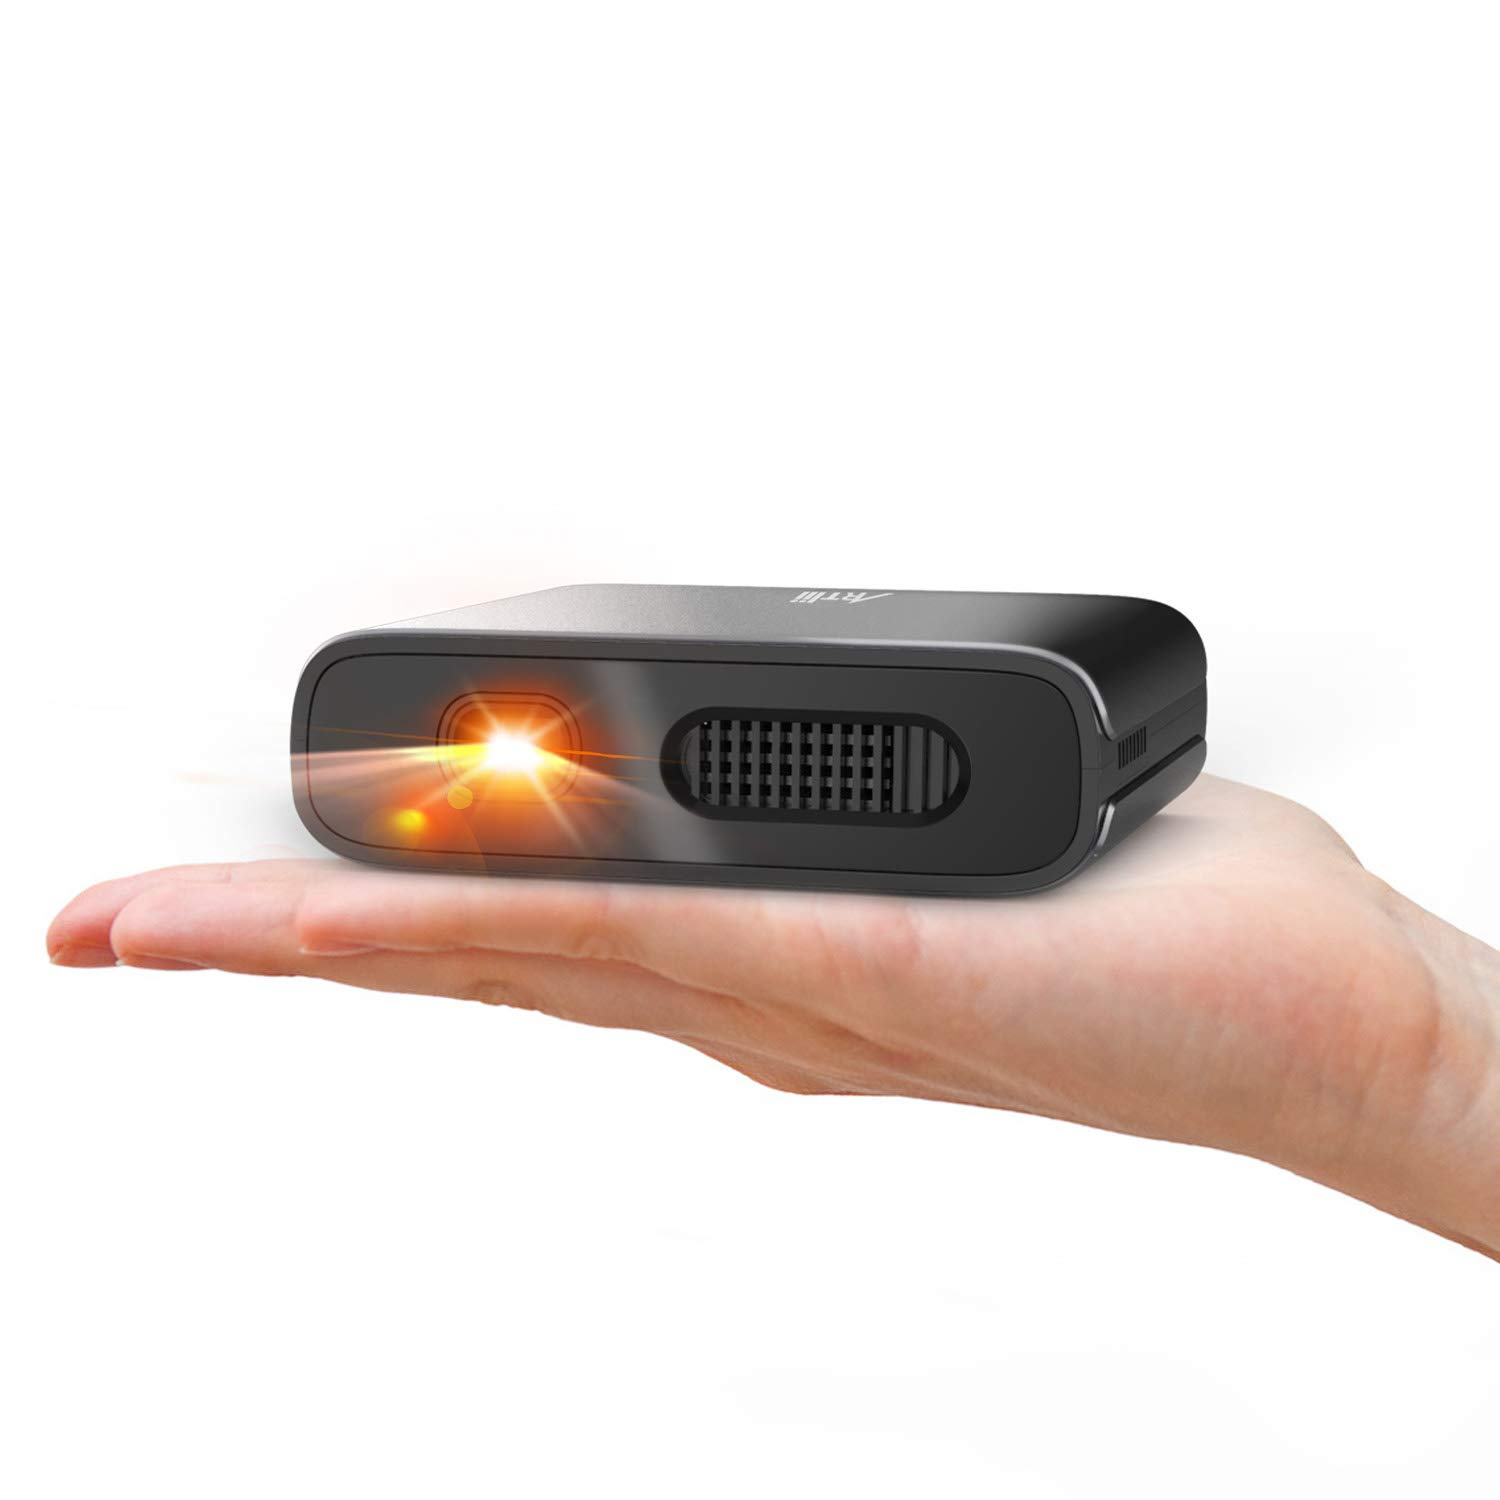 Mini Projector - Artlii Portable DLP Projector with 5200mAh Built-in Battery for Travel and Outdoor, Support 1080P 3D and Auto Keystone Correction, Pico Projector Compatible with iPhone and Smartphone by ARTlii